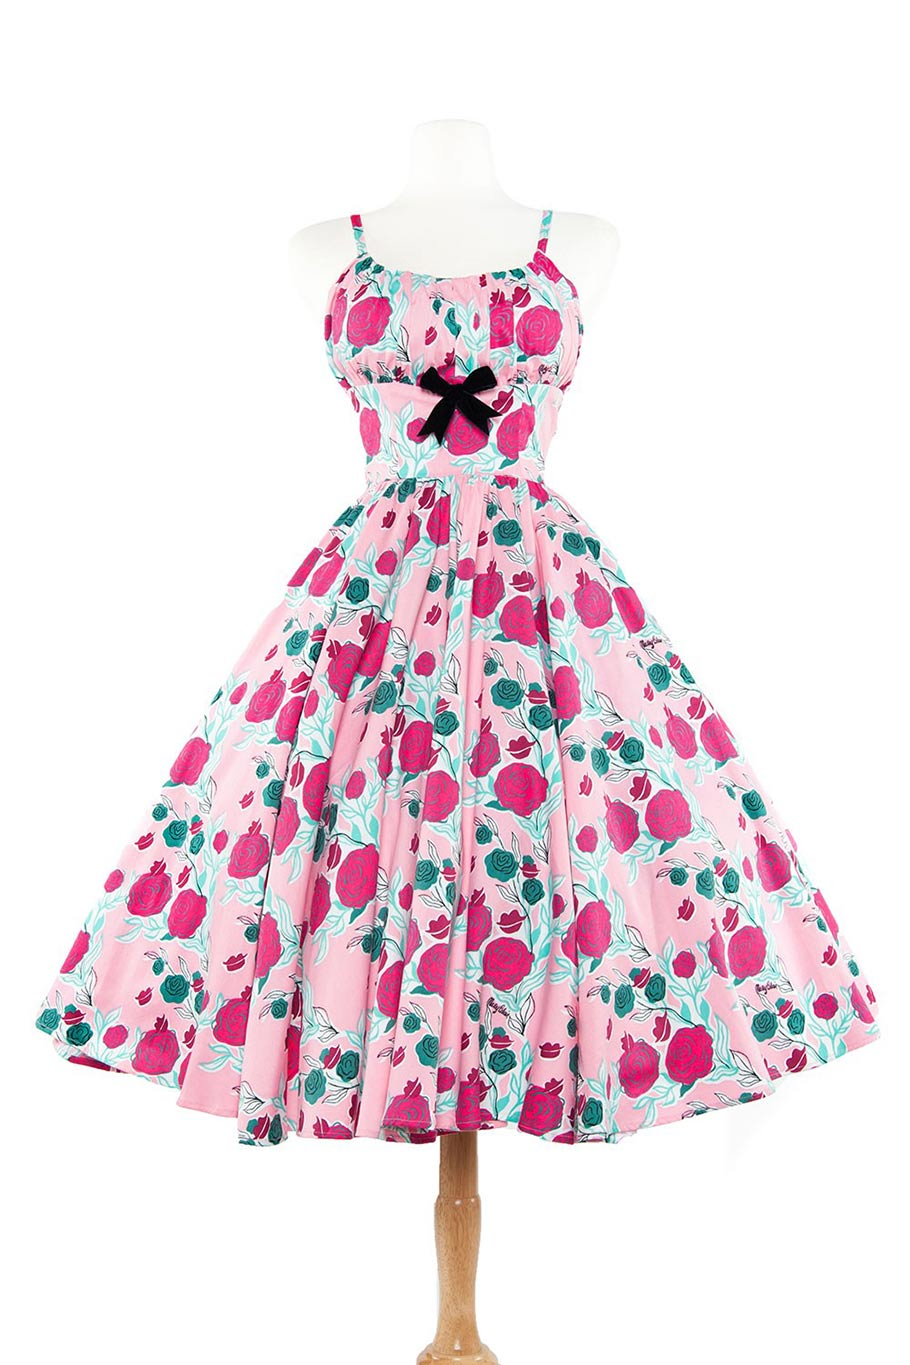 Ella dress in lips and roses print in pink. (Click to enlarge.)